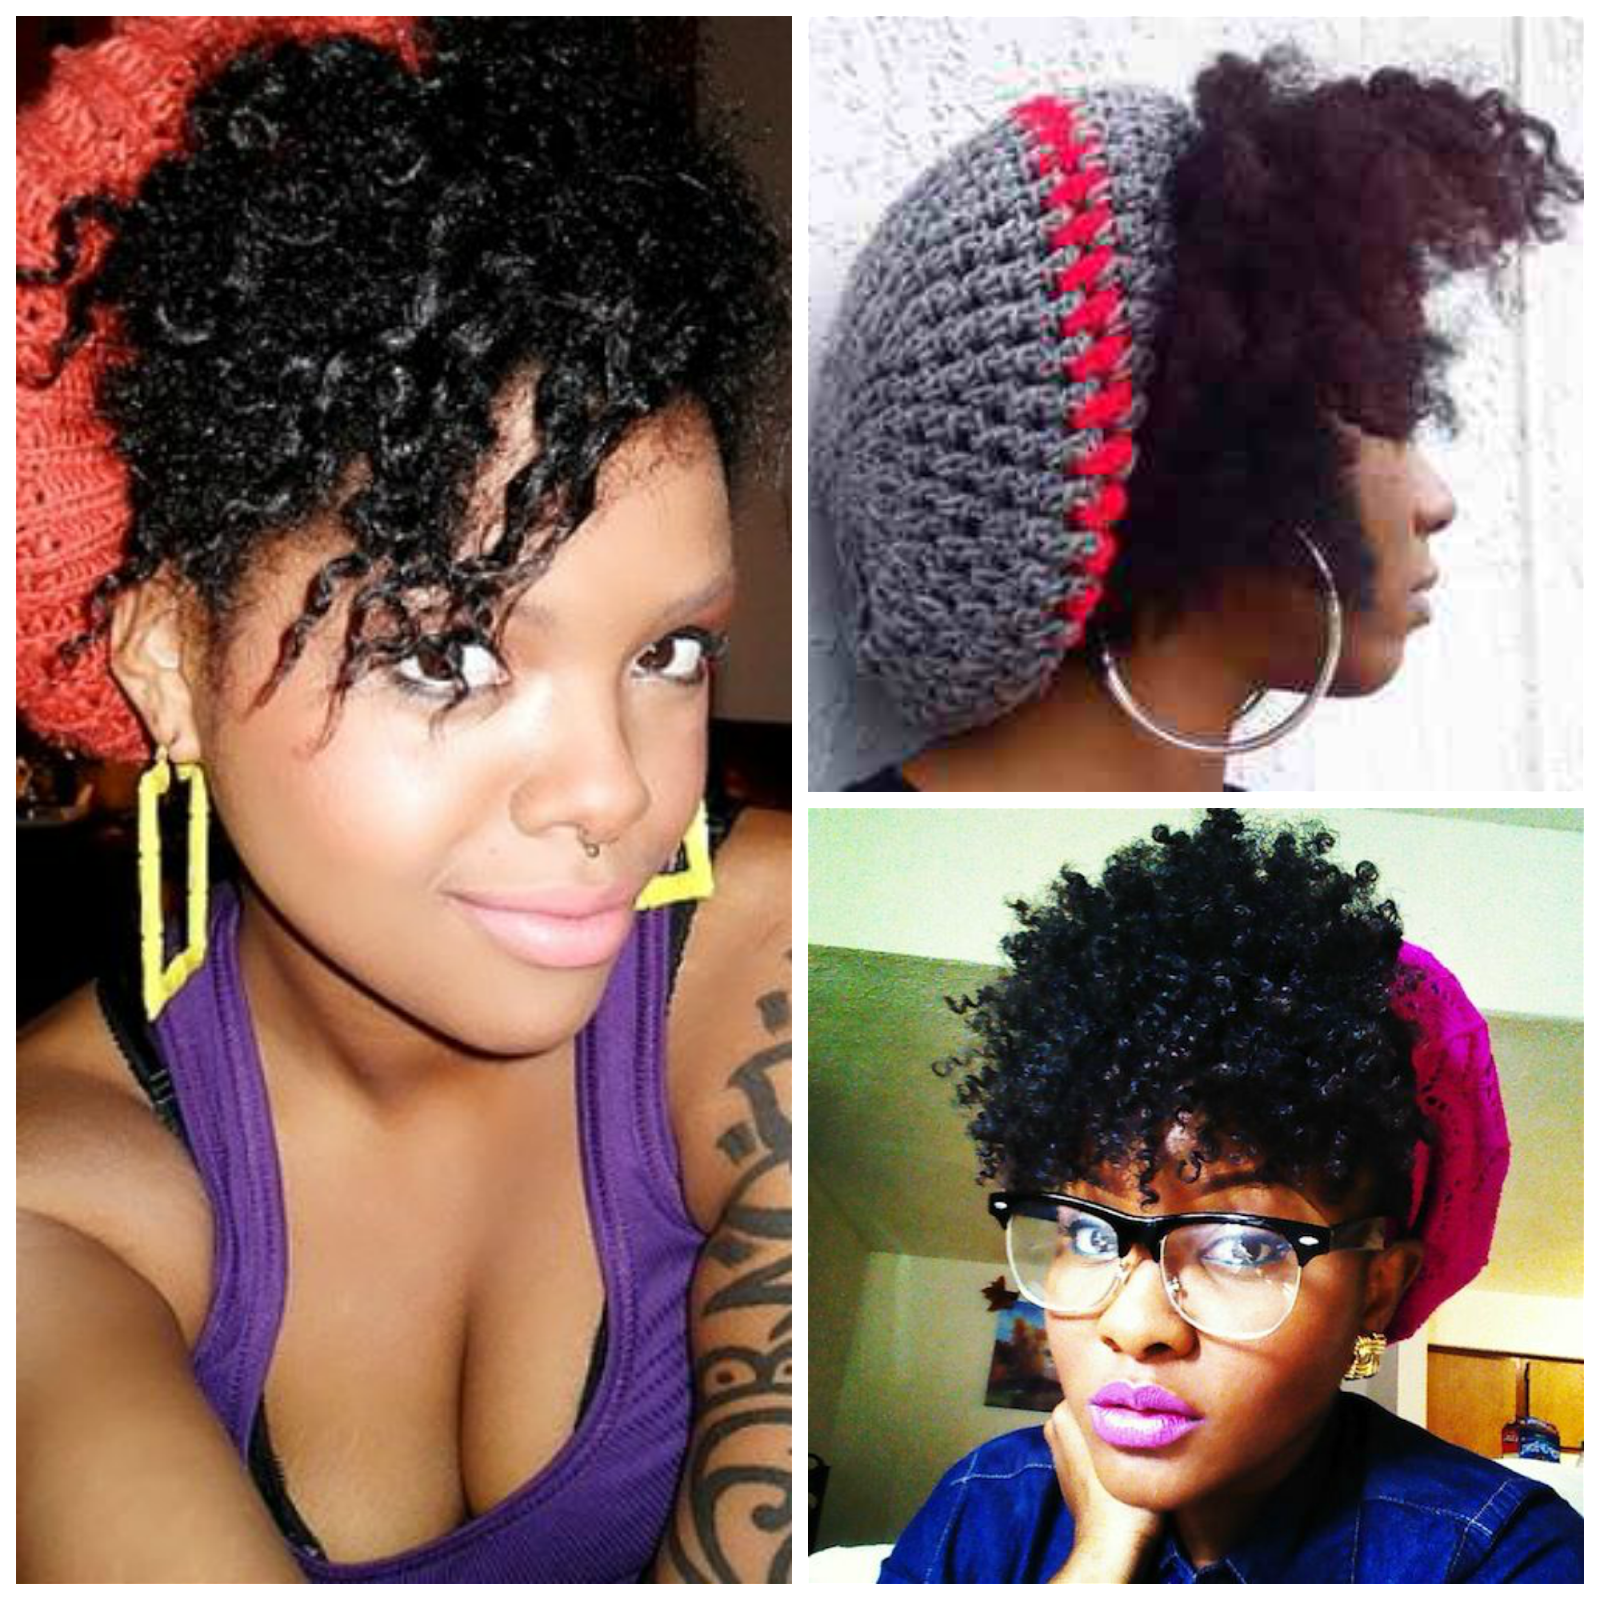 An array of beanies and natural hair styles hairthropology